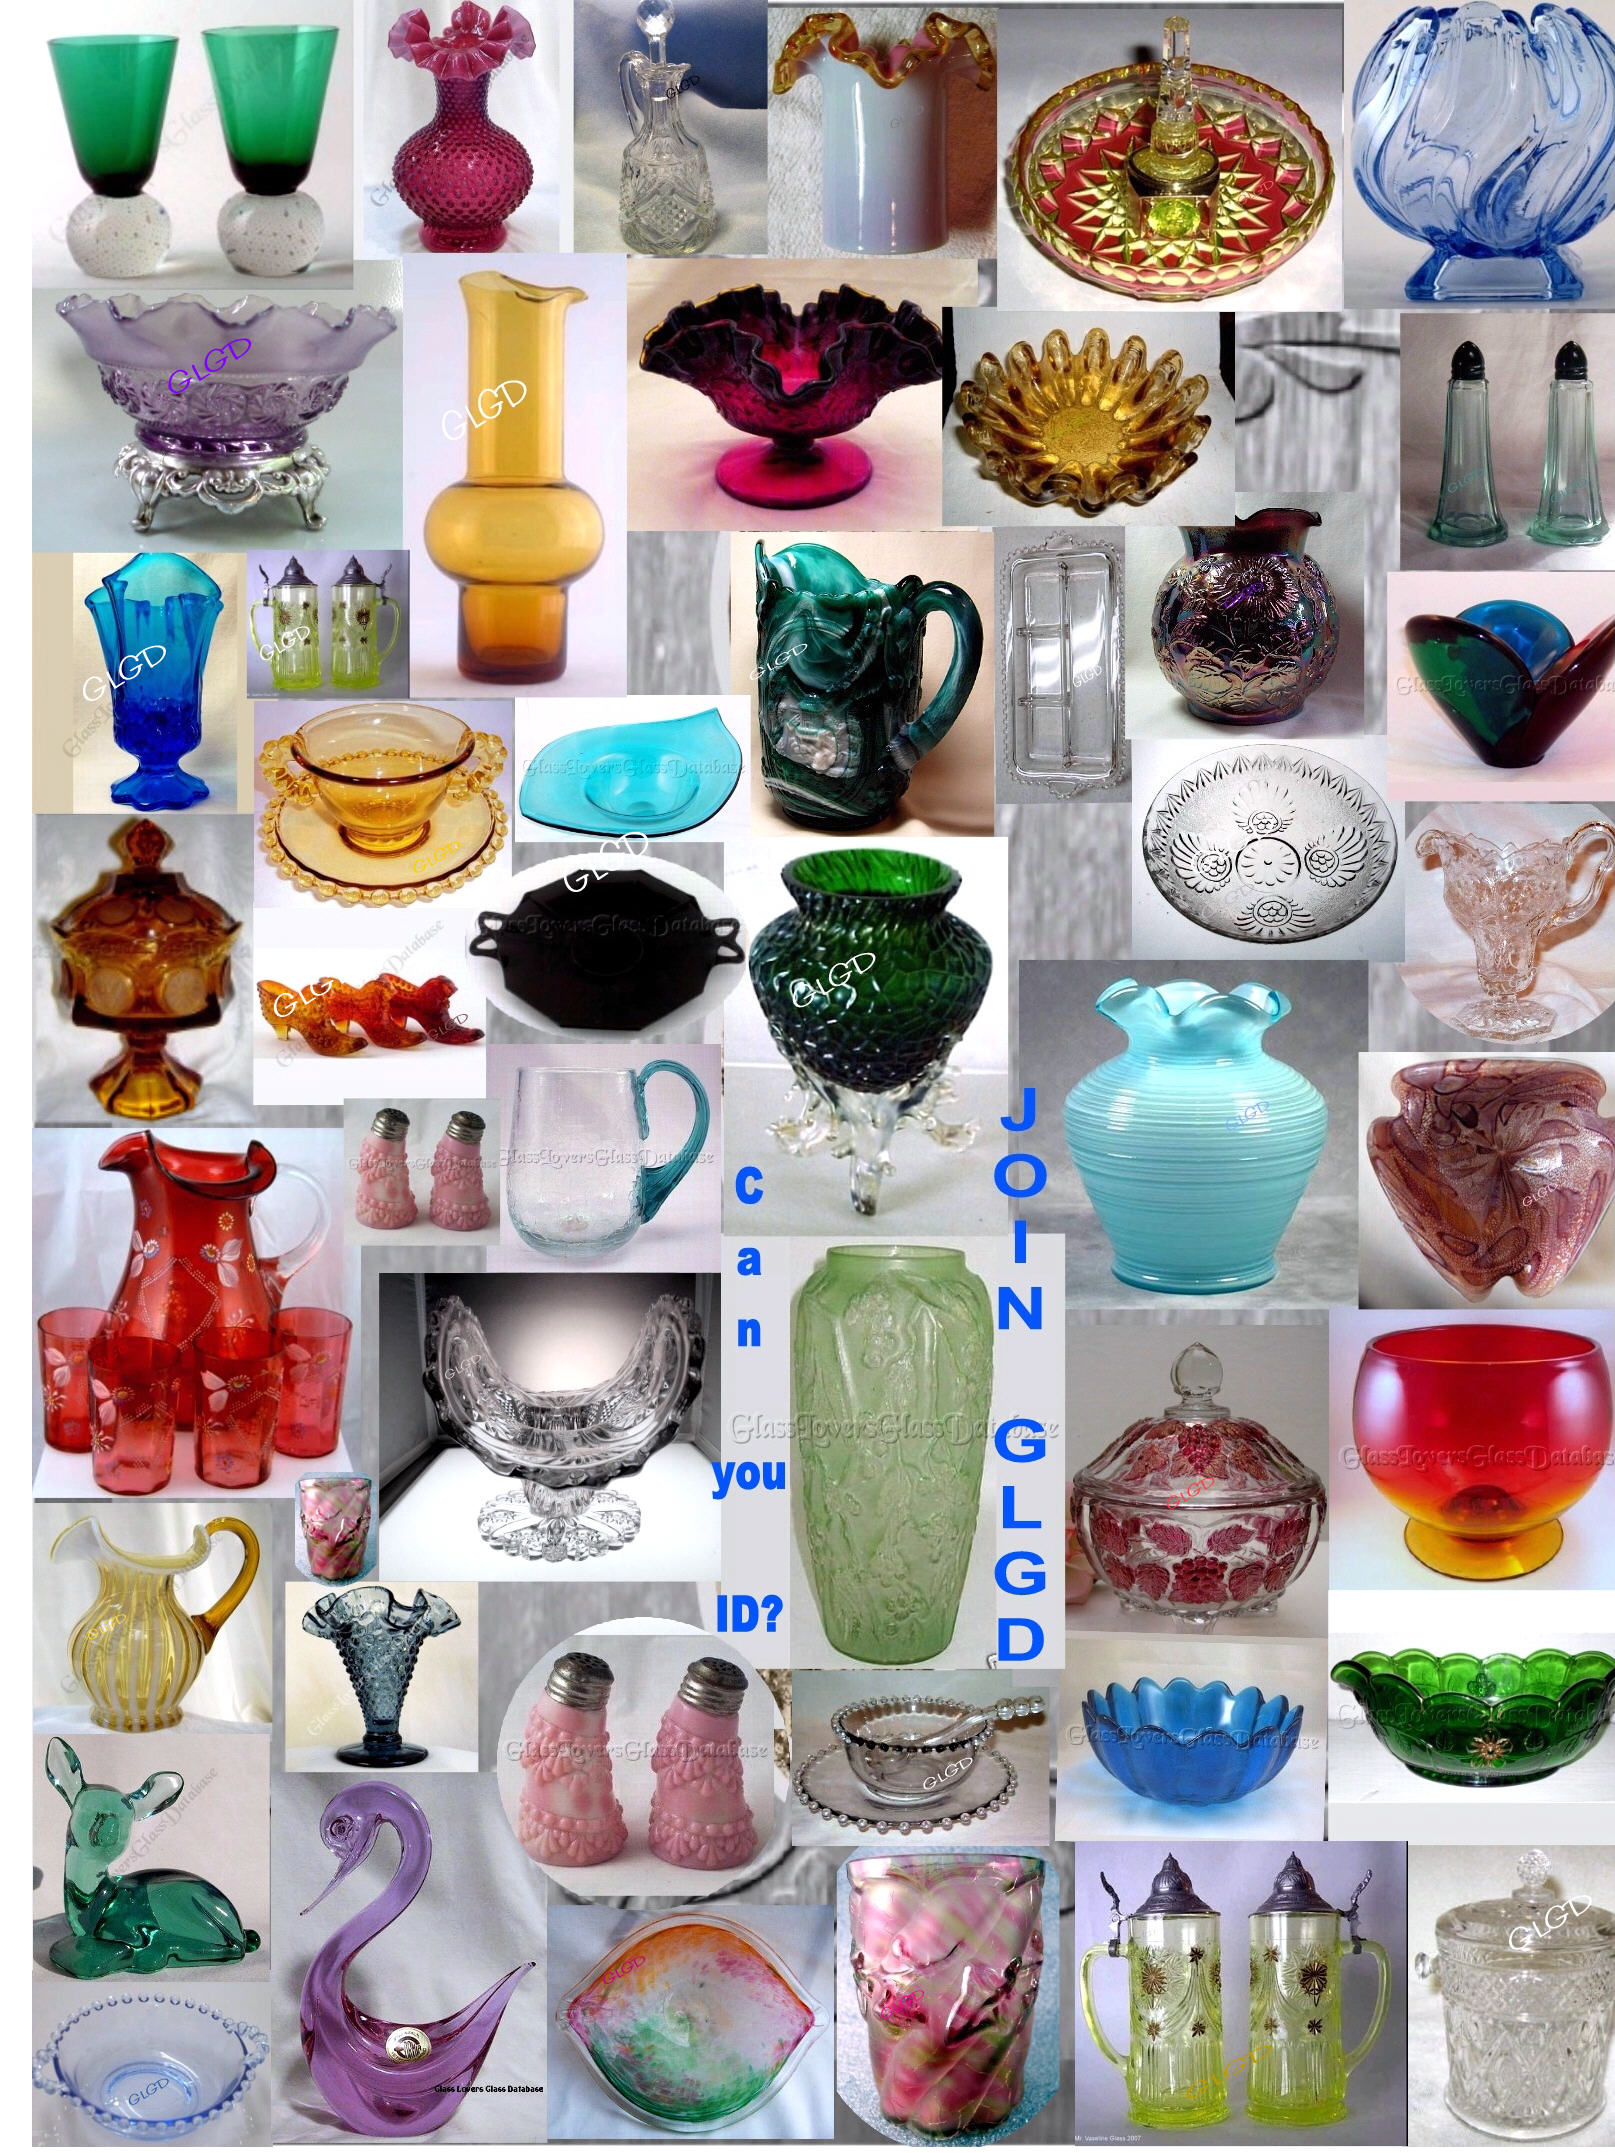 Glass Lovers Glass Database collage of glass